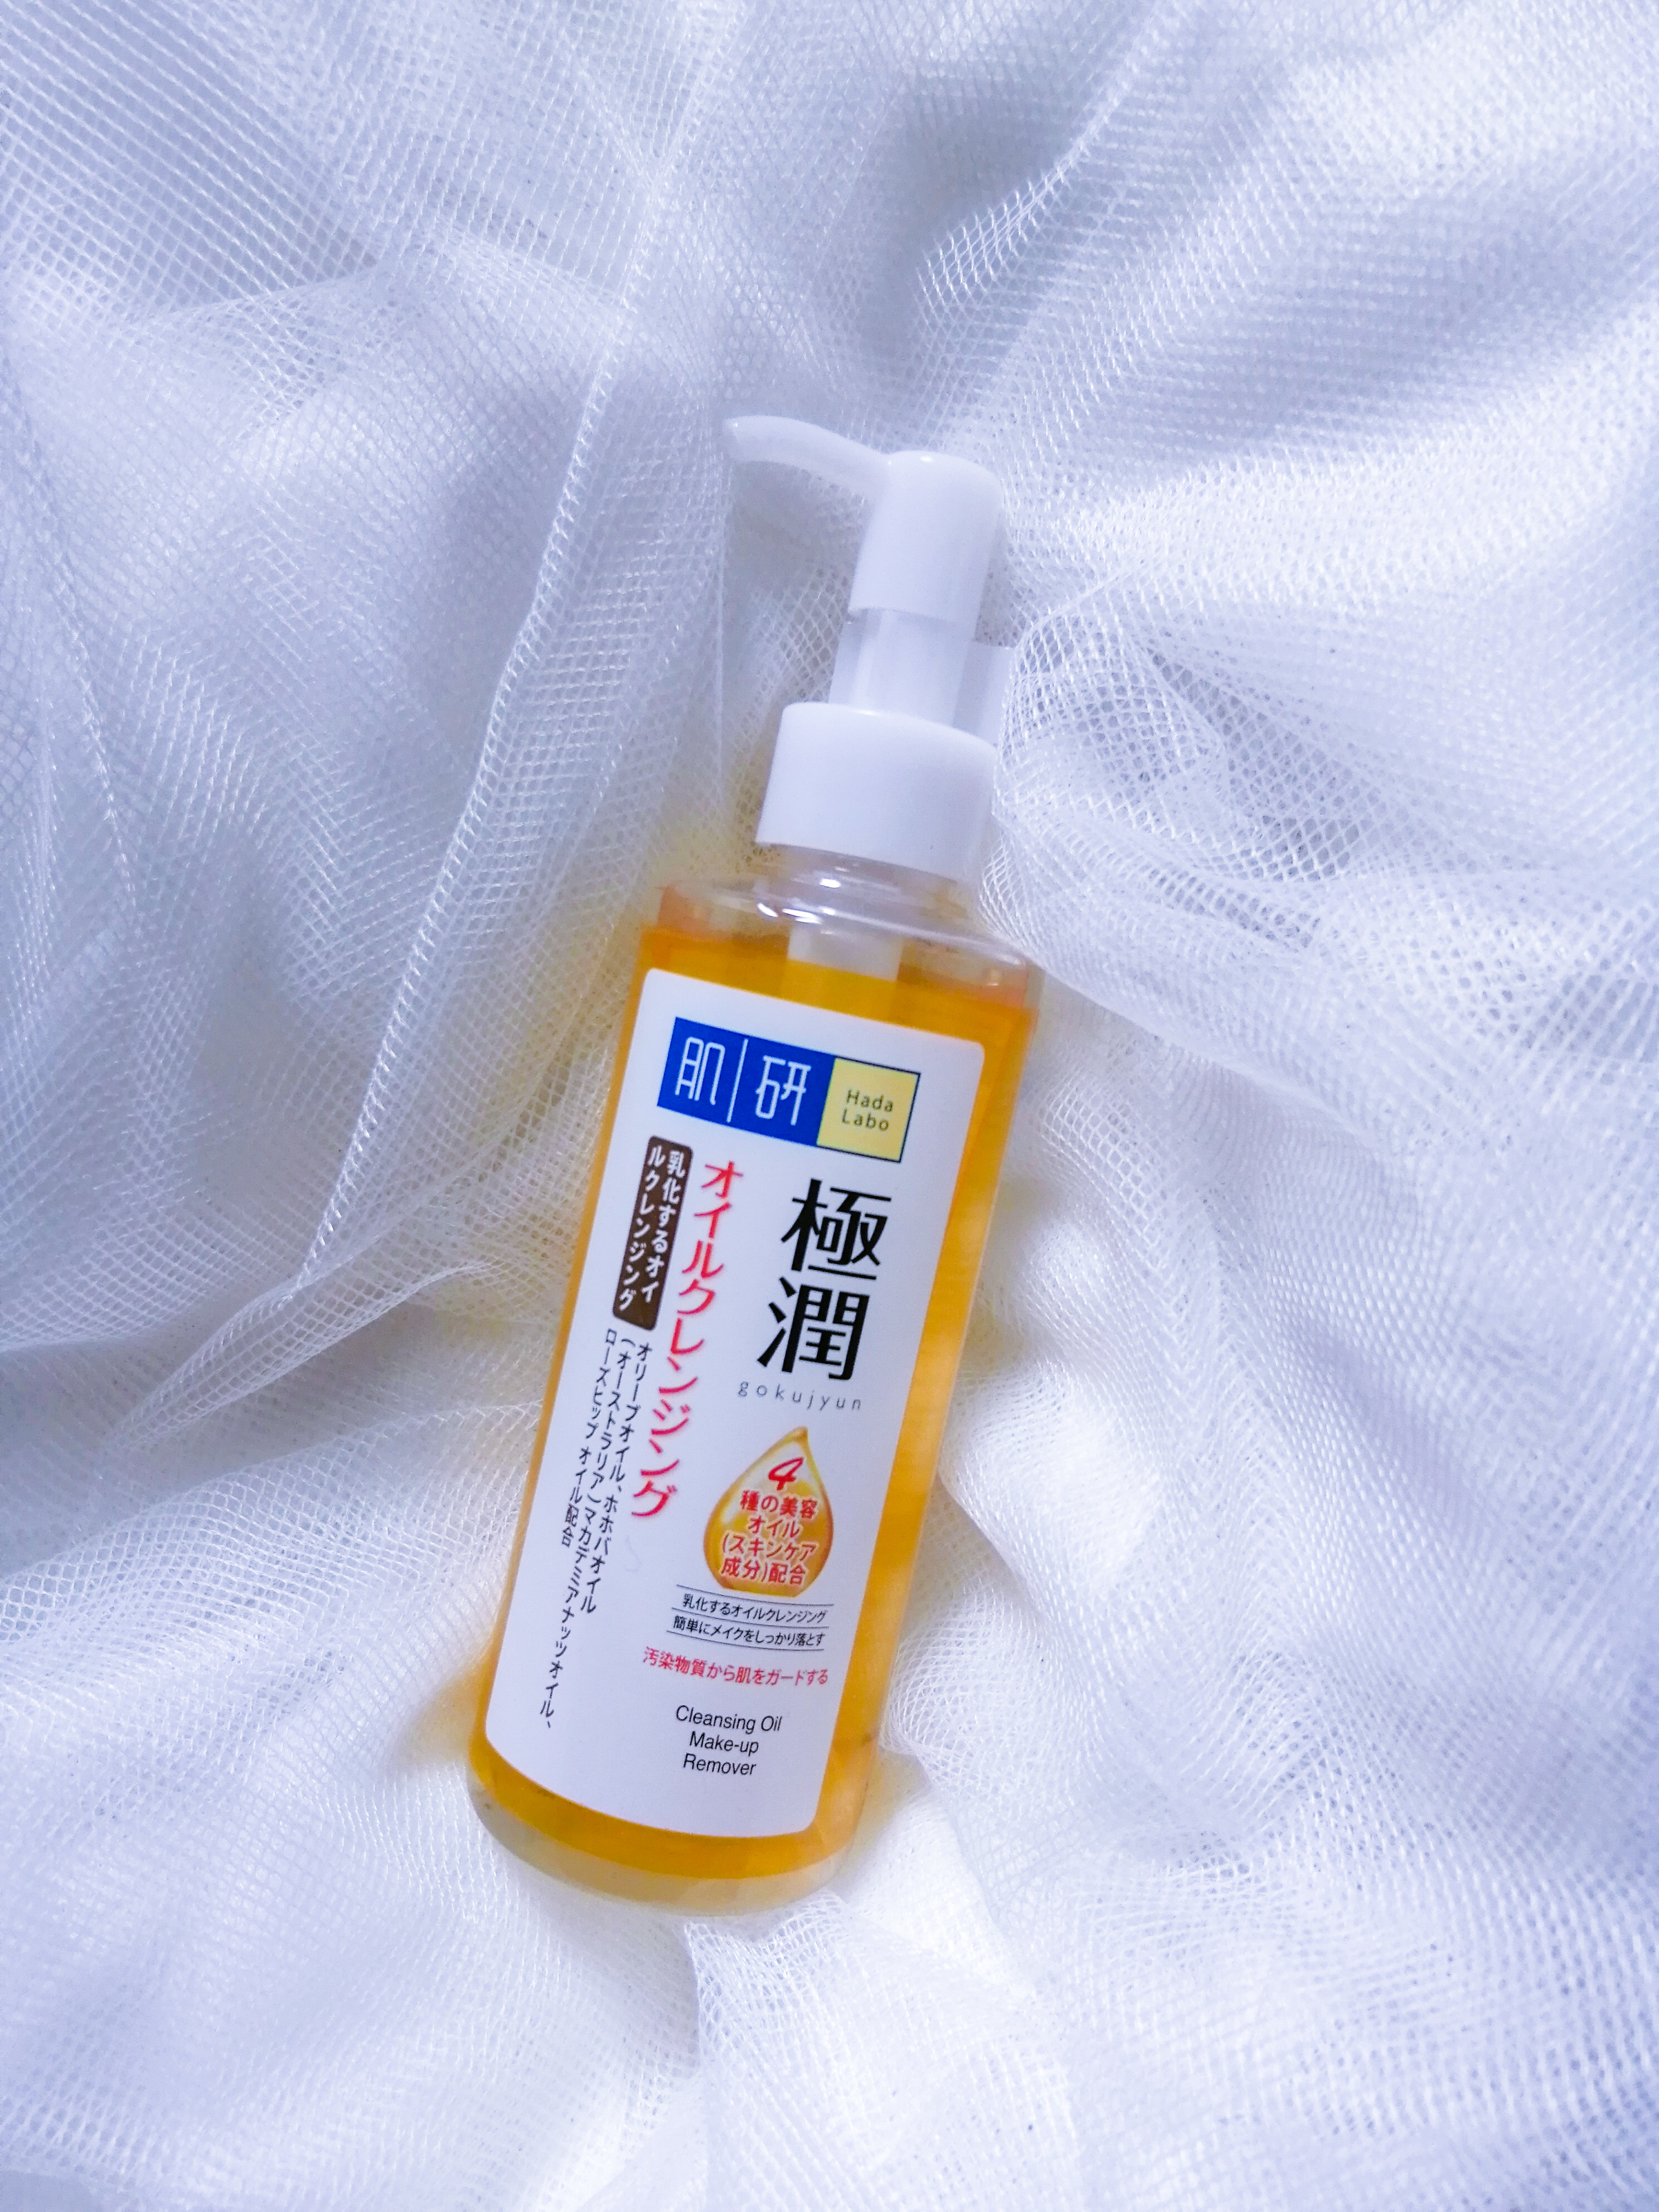 My Holy Grail Cleansing Oil : Hada Labo Super Hyaluronic Acid Hydrating Cleansing Oil.